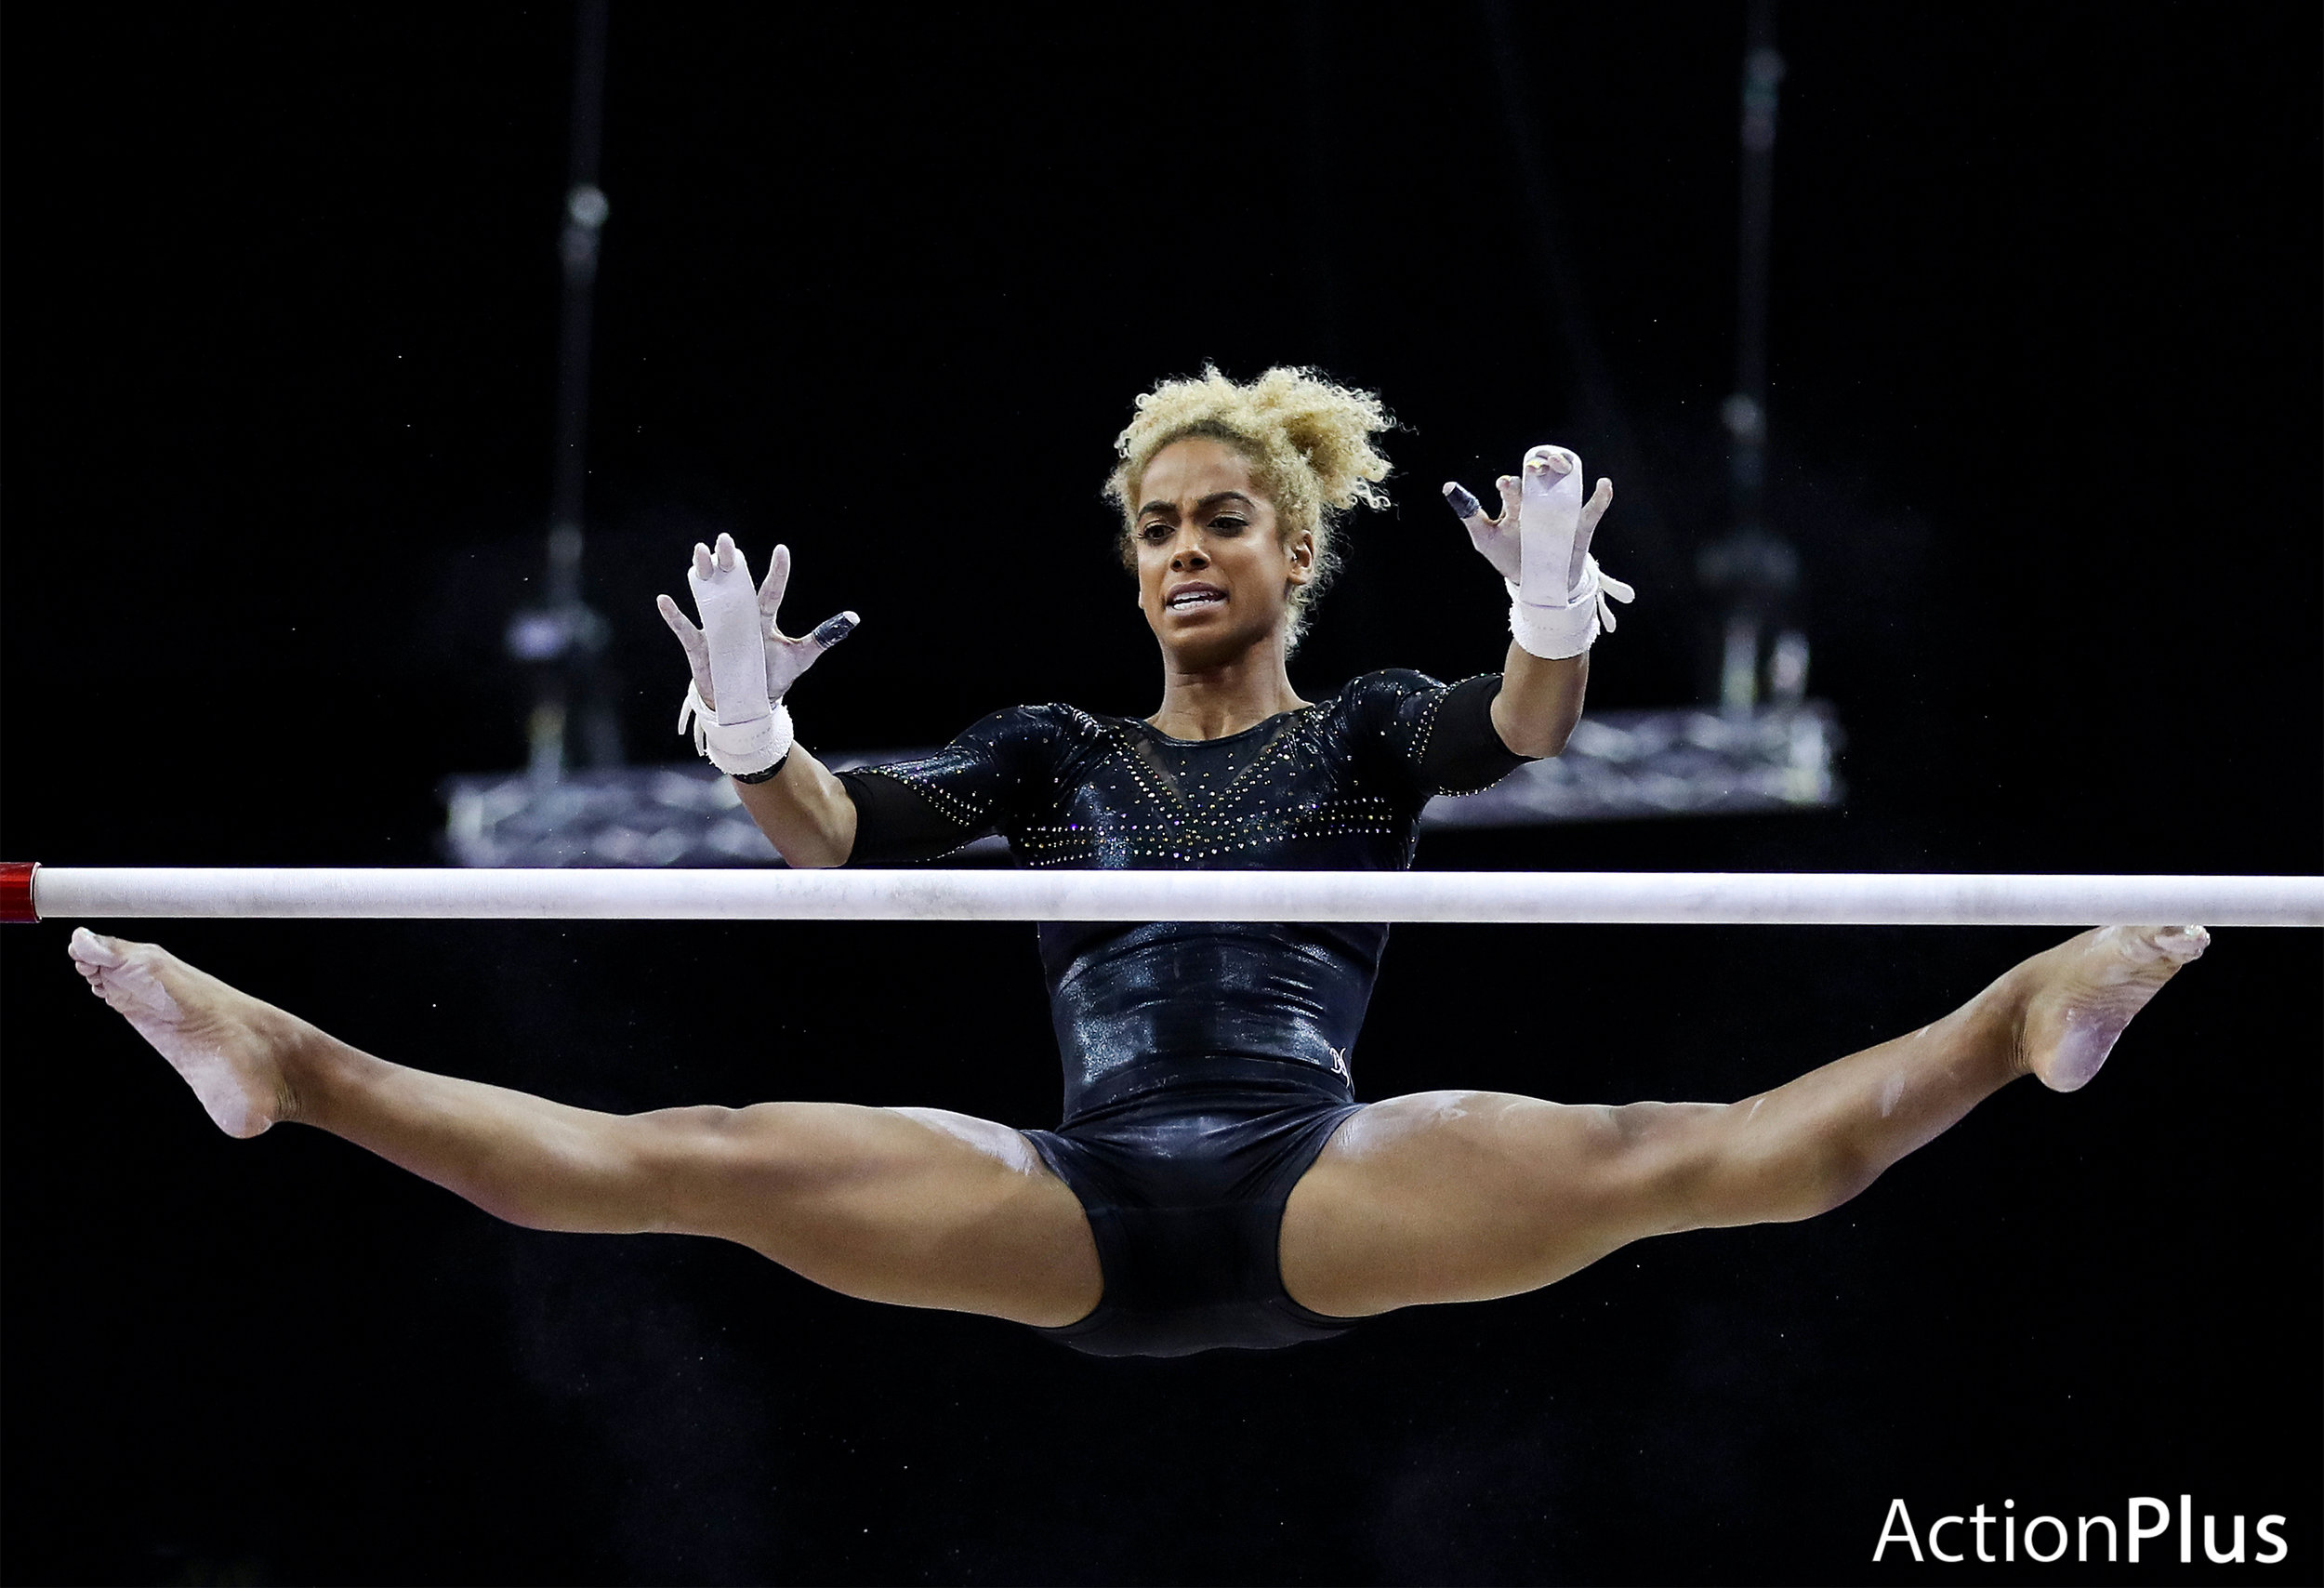 Danusia Francis of Jamaica performing on the women's uneven bars.